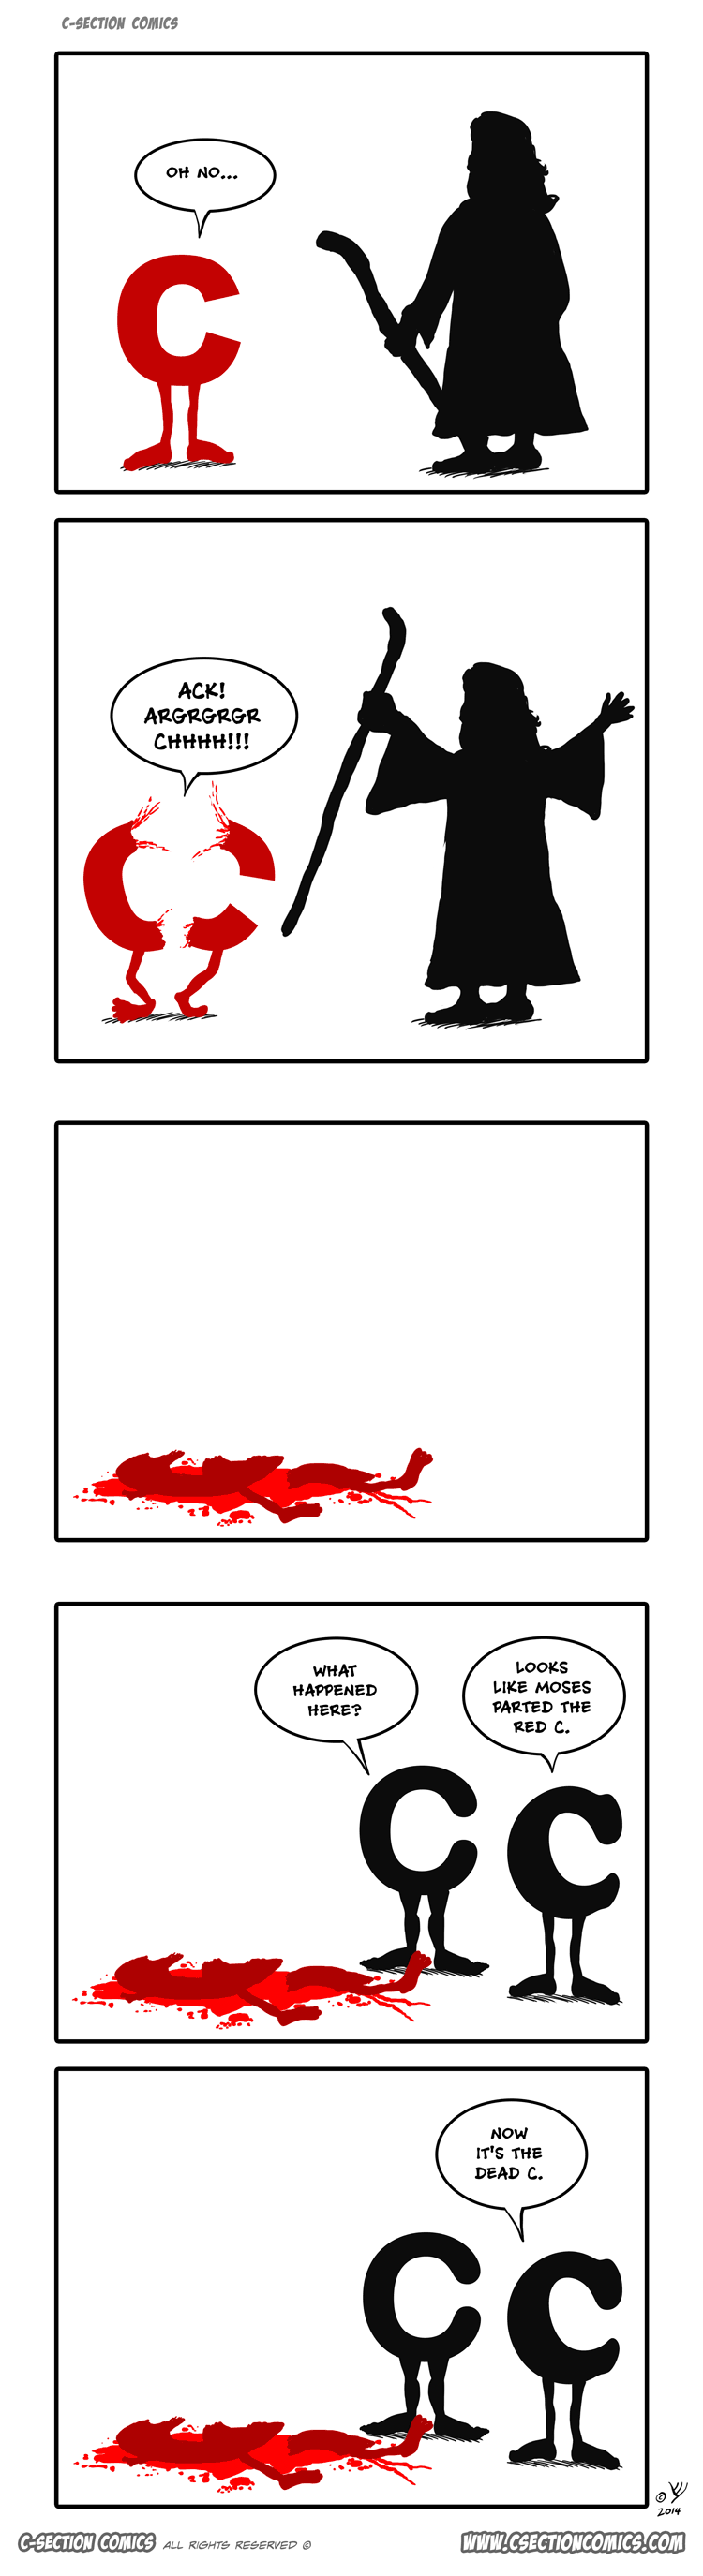 comic-2014-01-07-the-red-c-64c.png